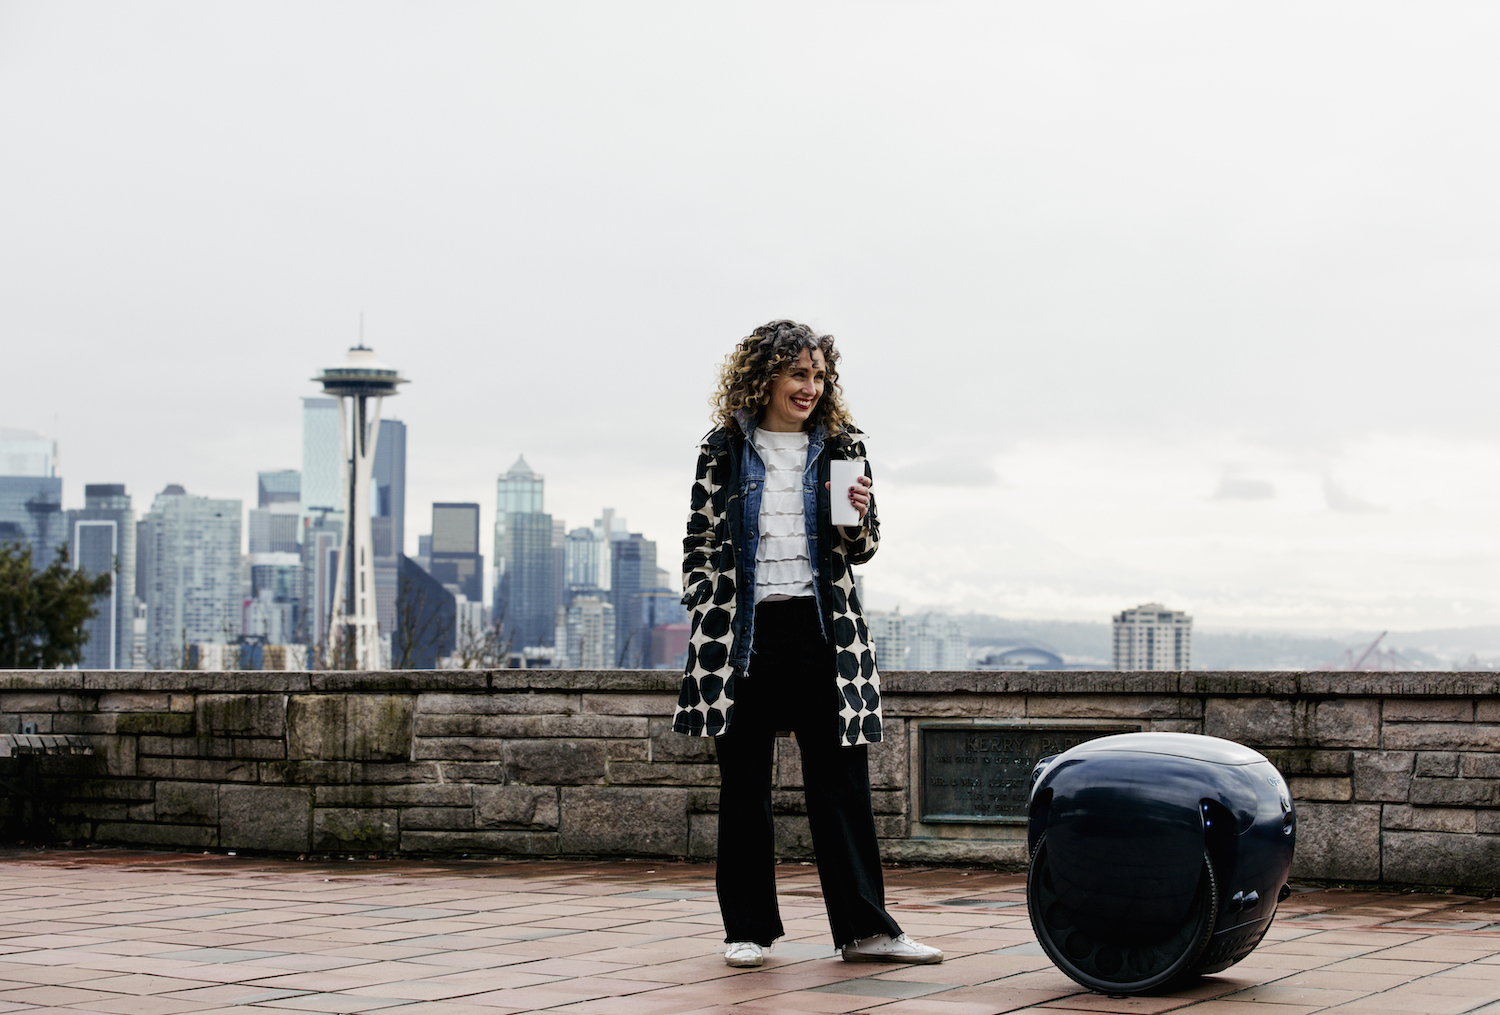 Company targets 'walkable' Seattle with robot that carries your stuff – but is $3k price tag a heavy lift?